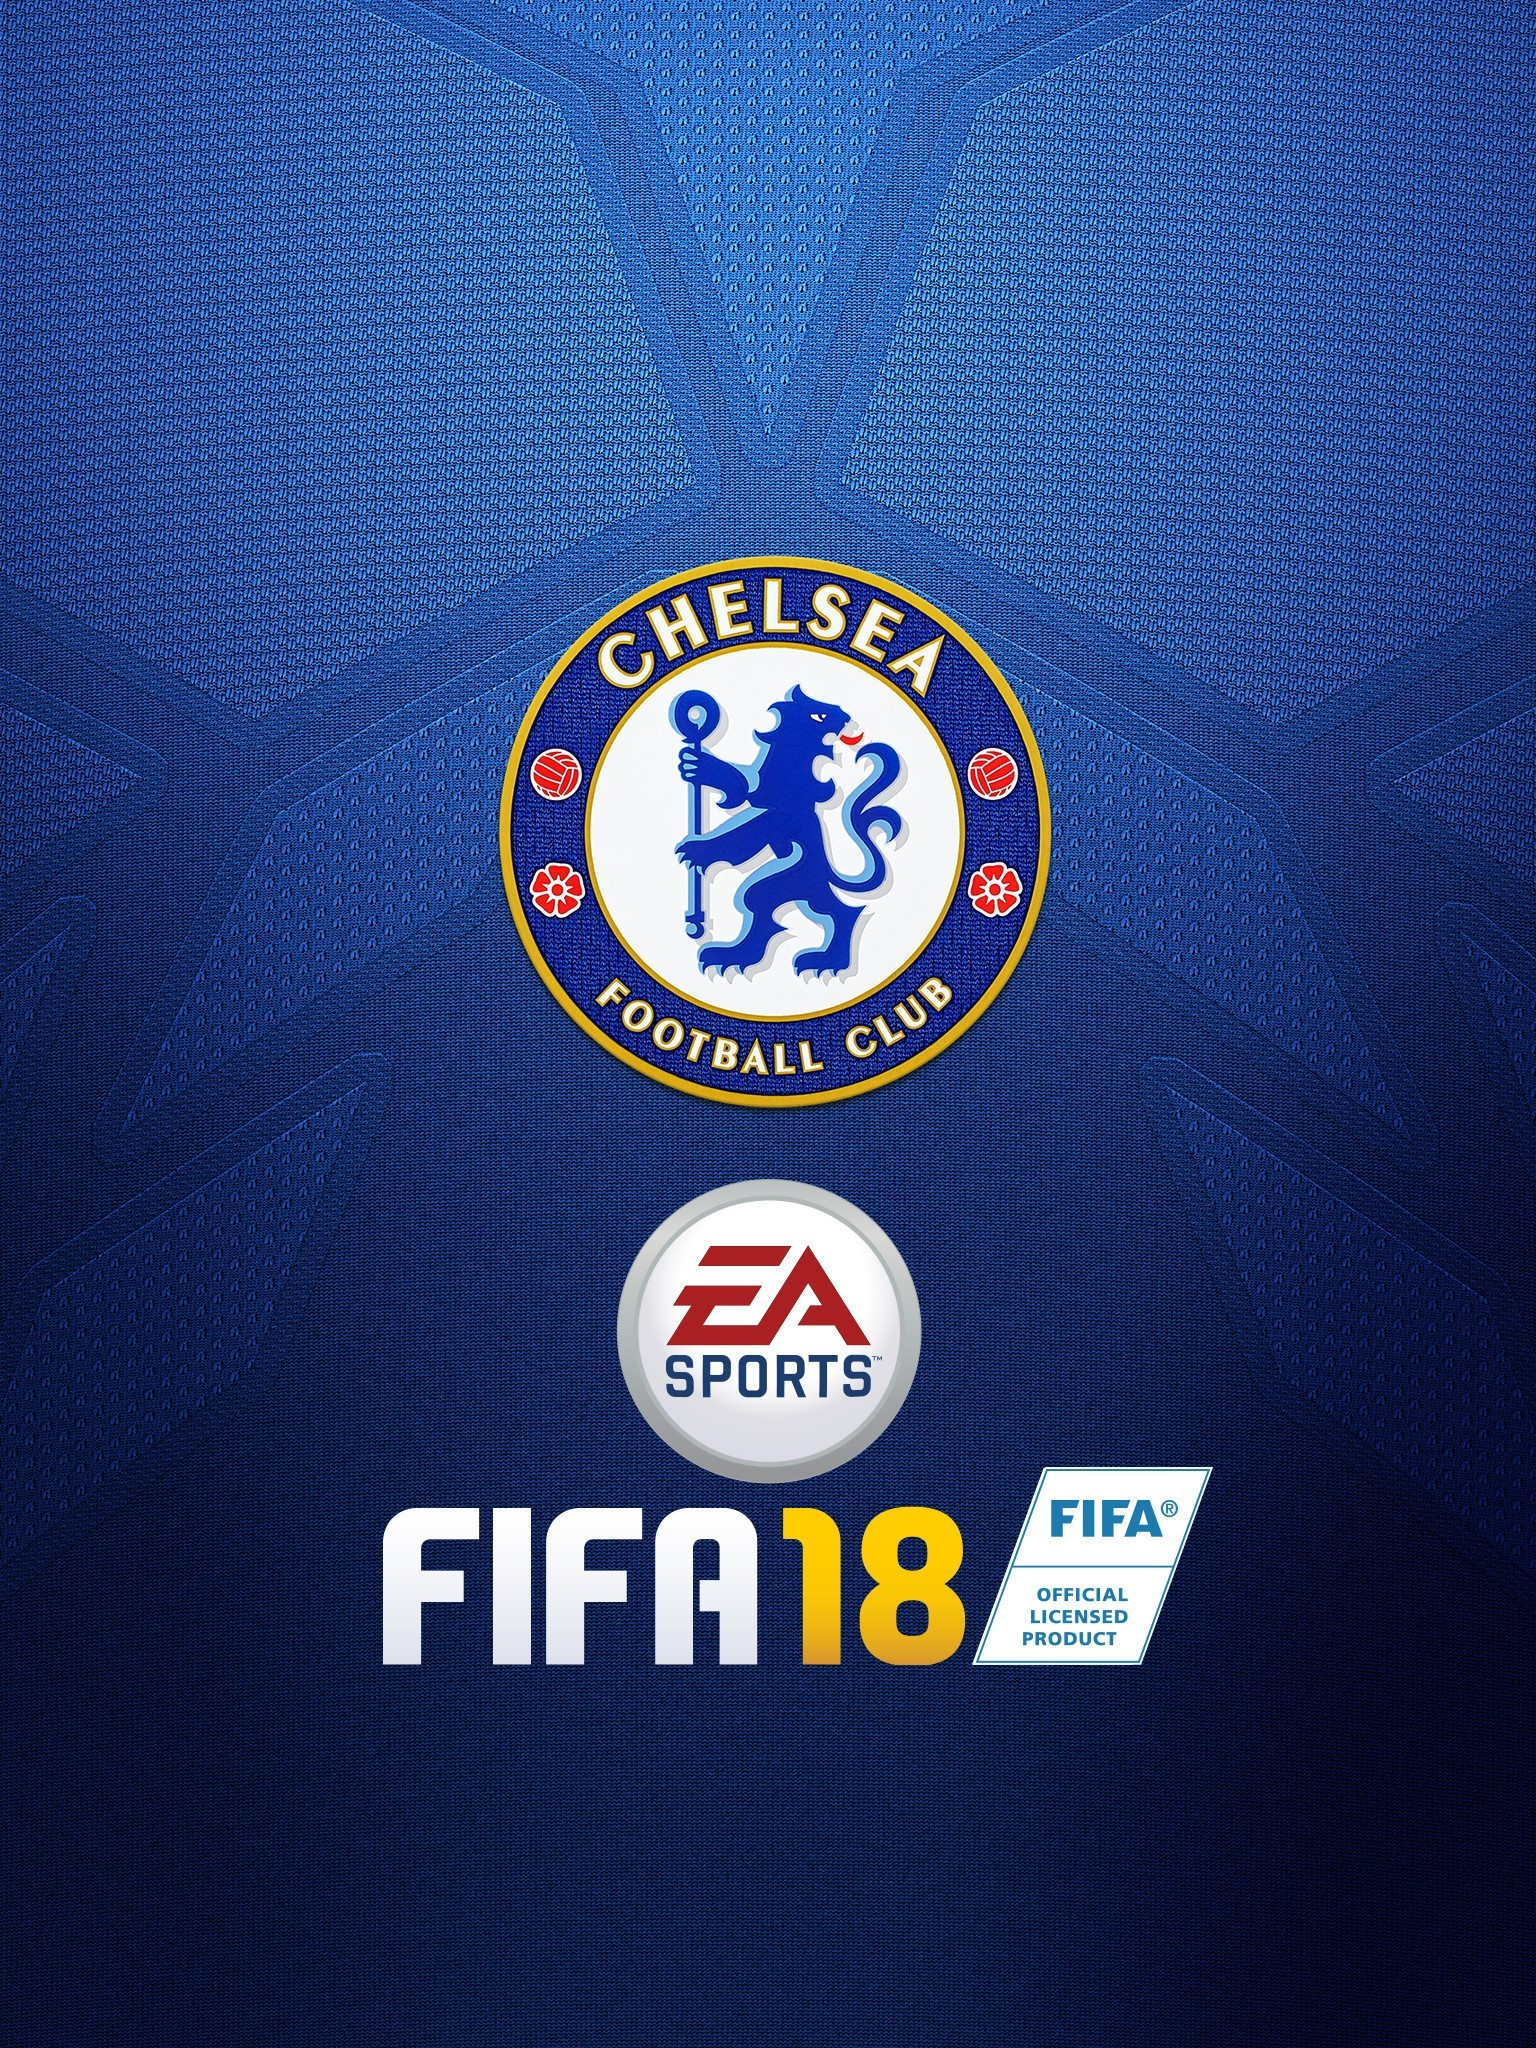 Logo Chelsea Wallpapers 2018 73 Background Pictures